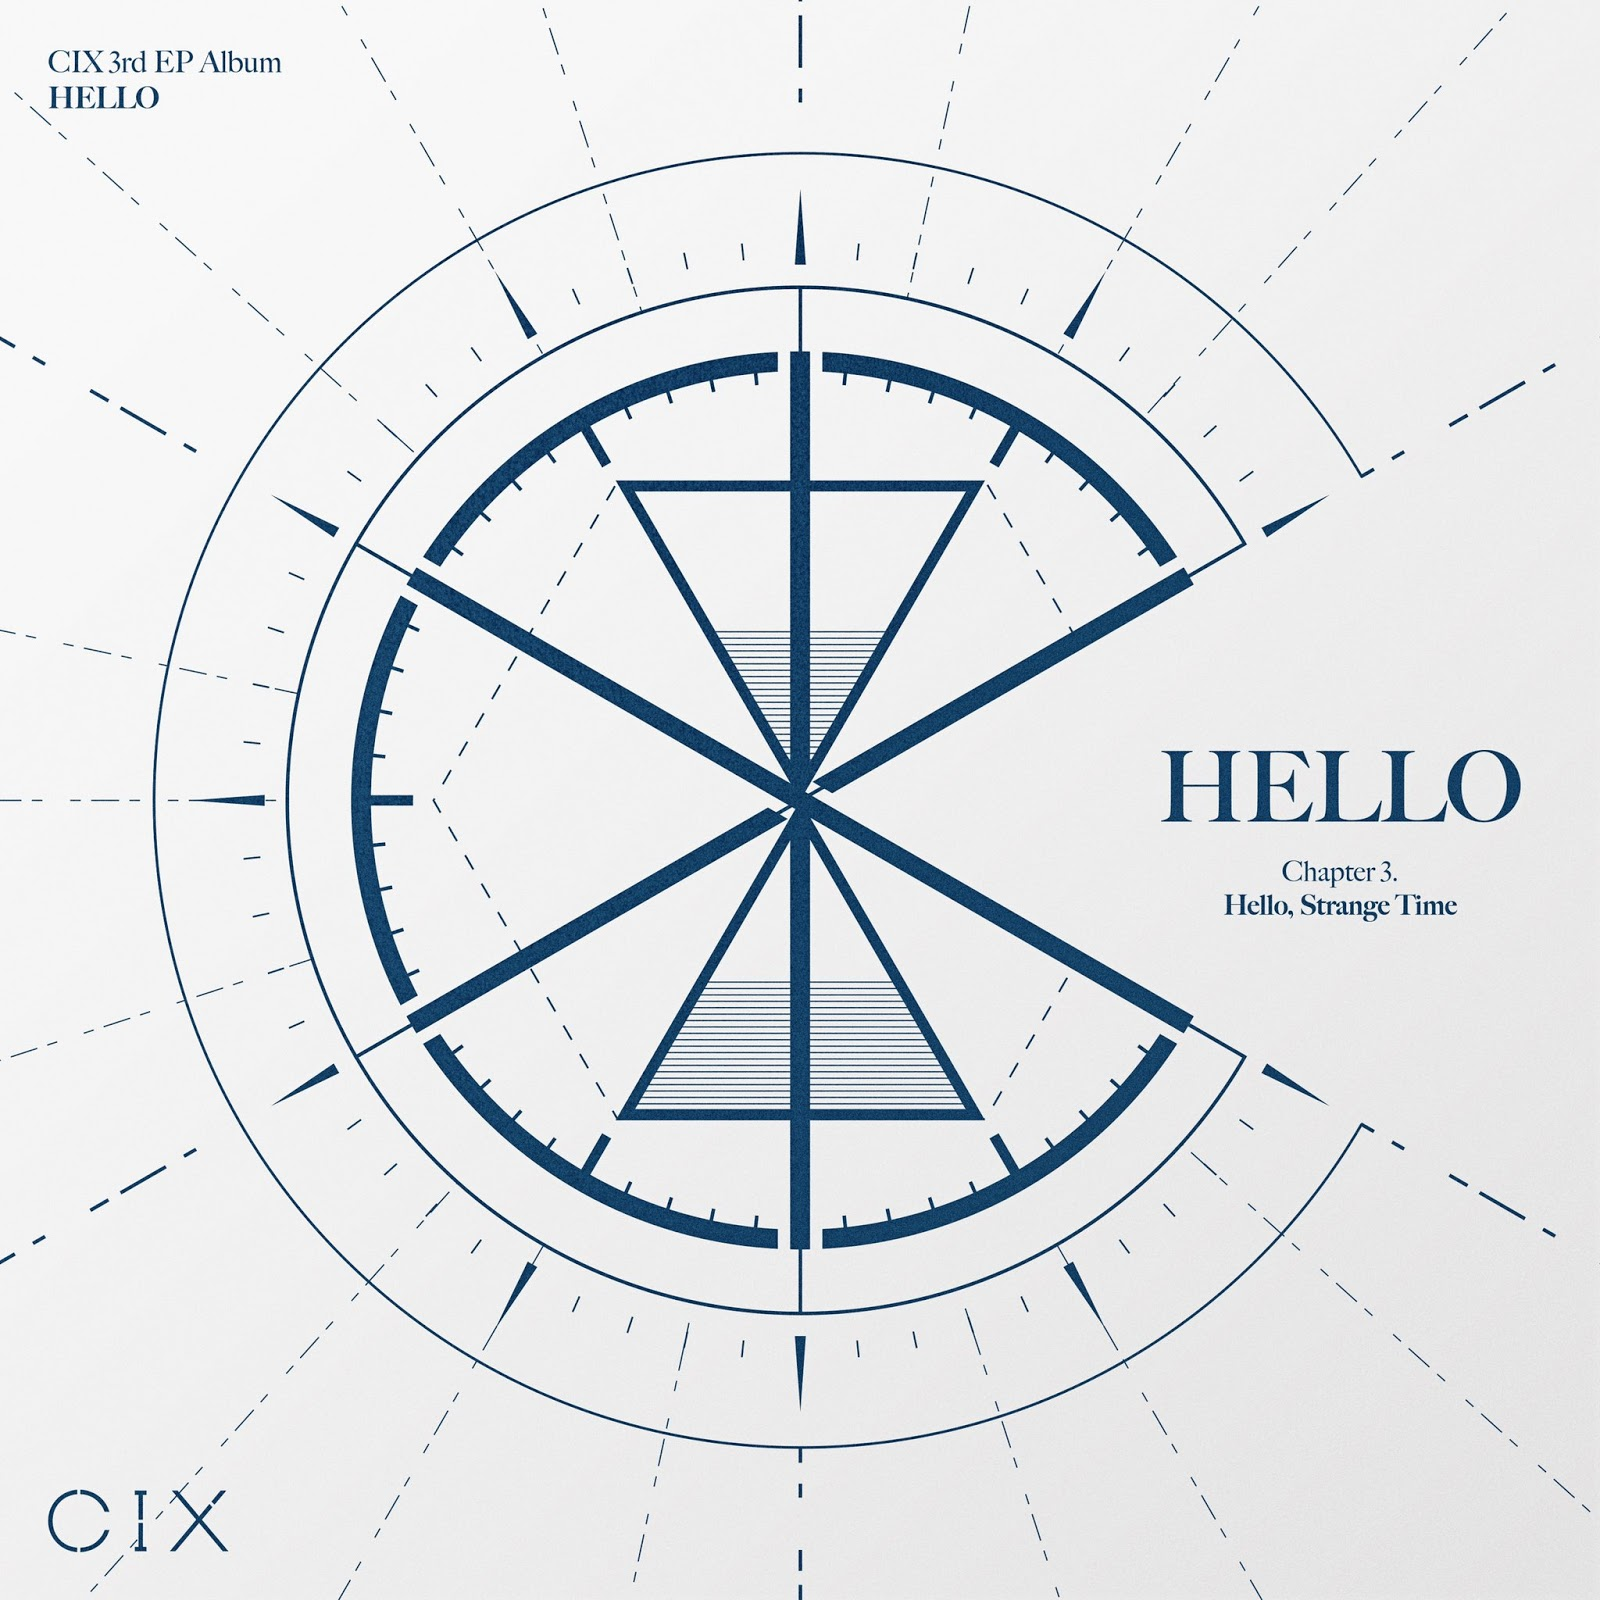 CIX 'HELLO' Chapter 3. Hello, Strange Time